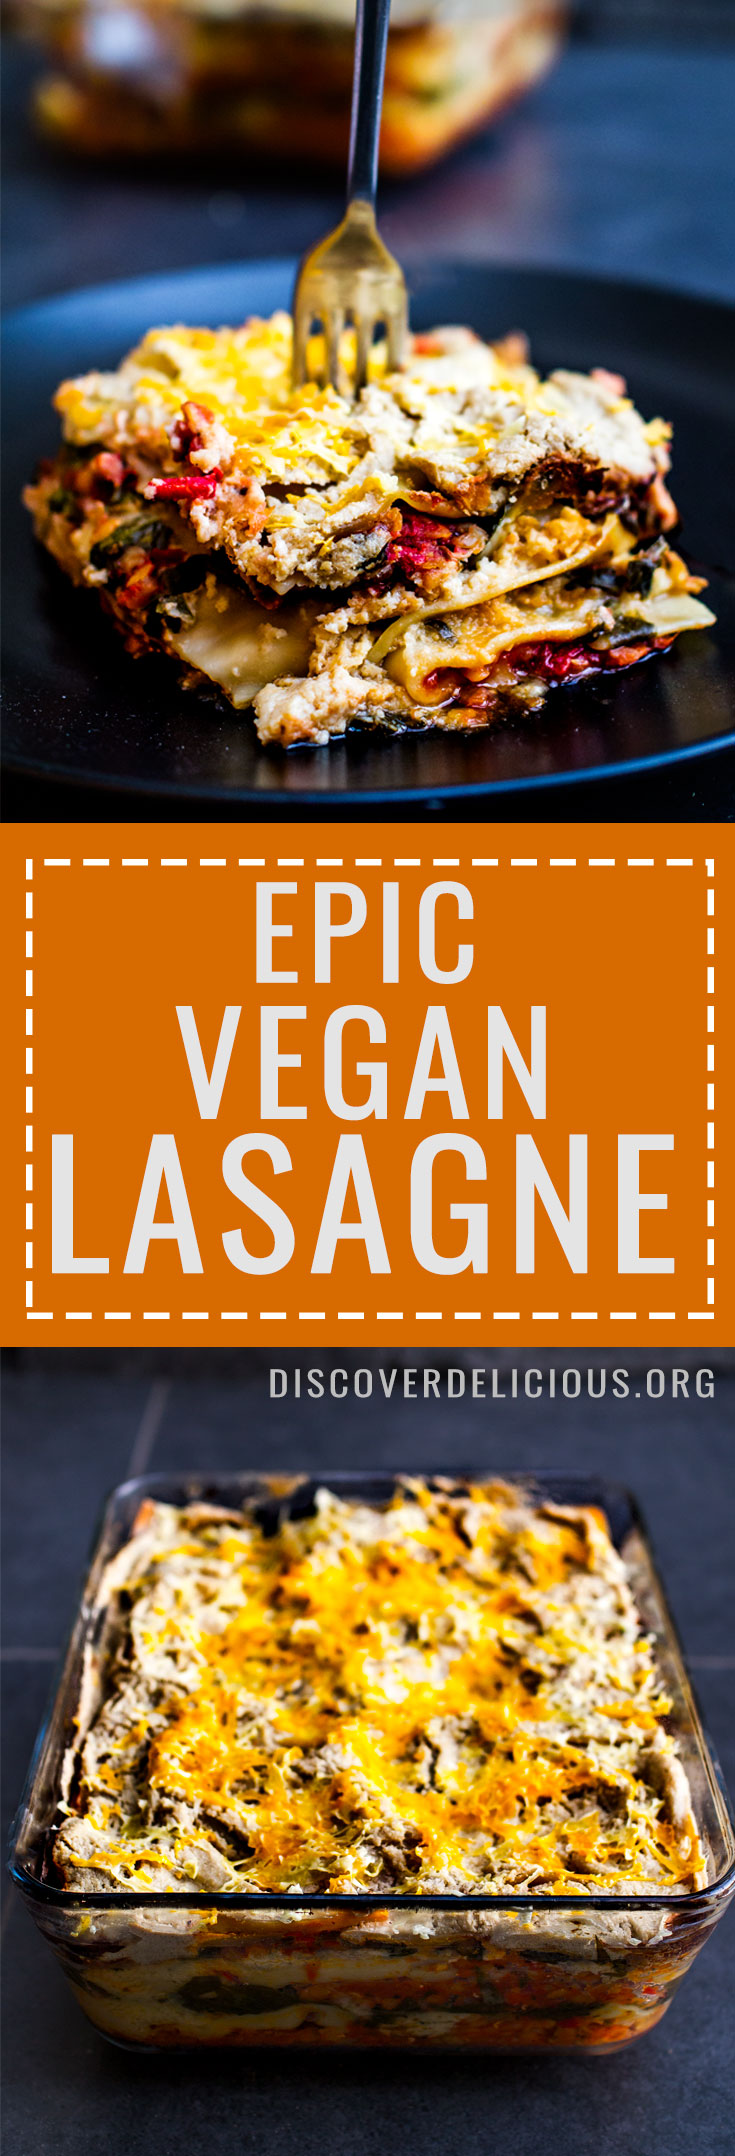 Vegan Lasagne Recipe - perfect for a large family meal or meal prep for the week! So delicious and satisfying but remains light! | Discover Delicious | www.discoverdelicious.org